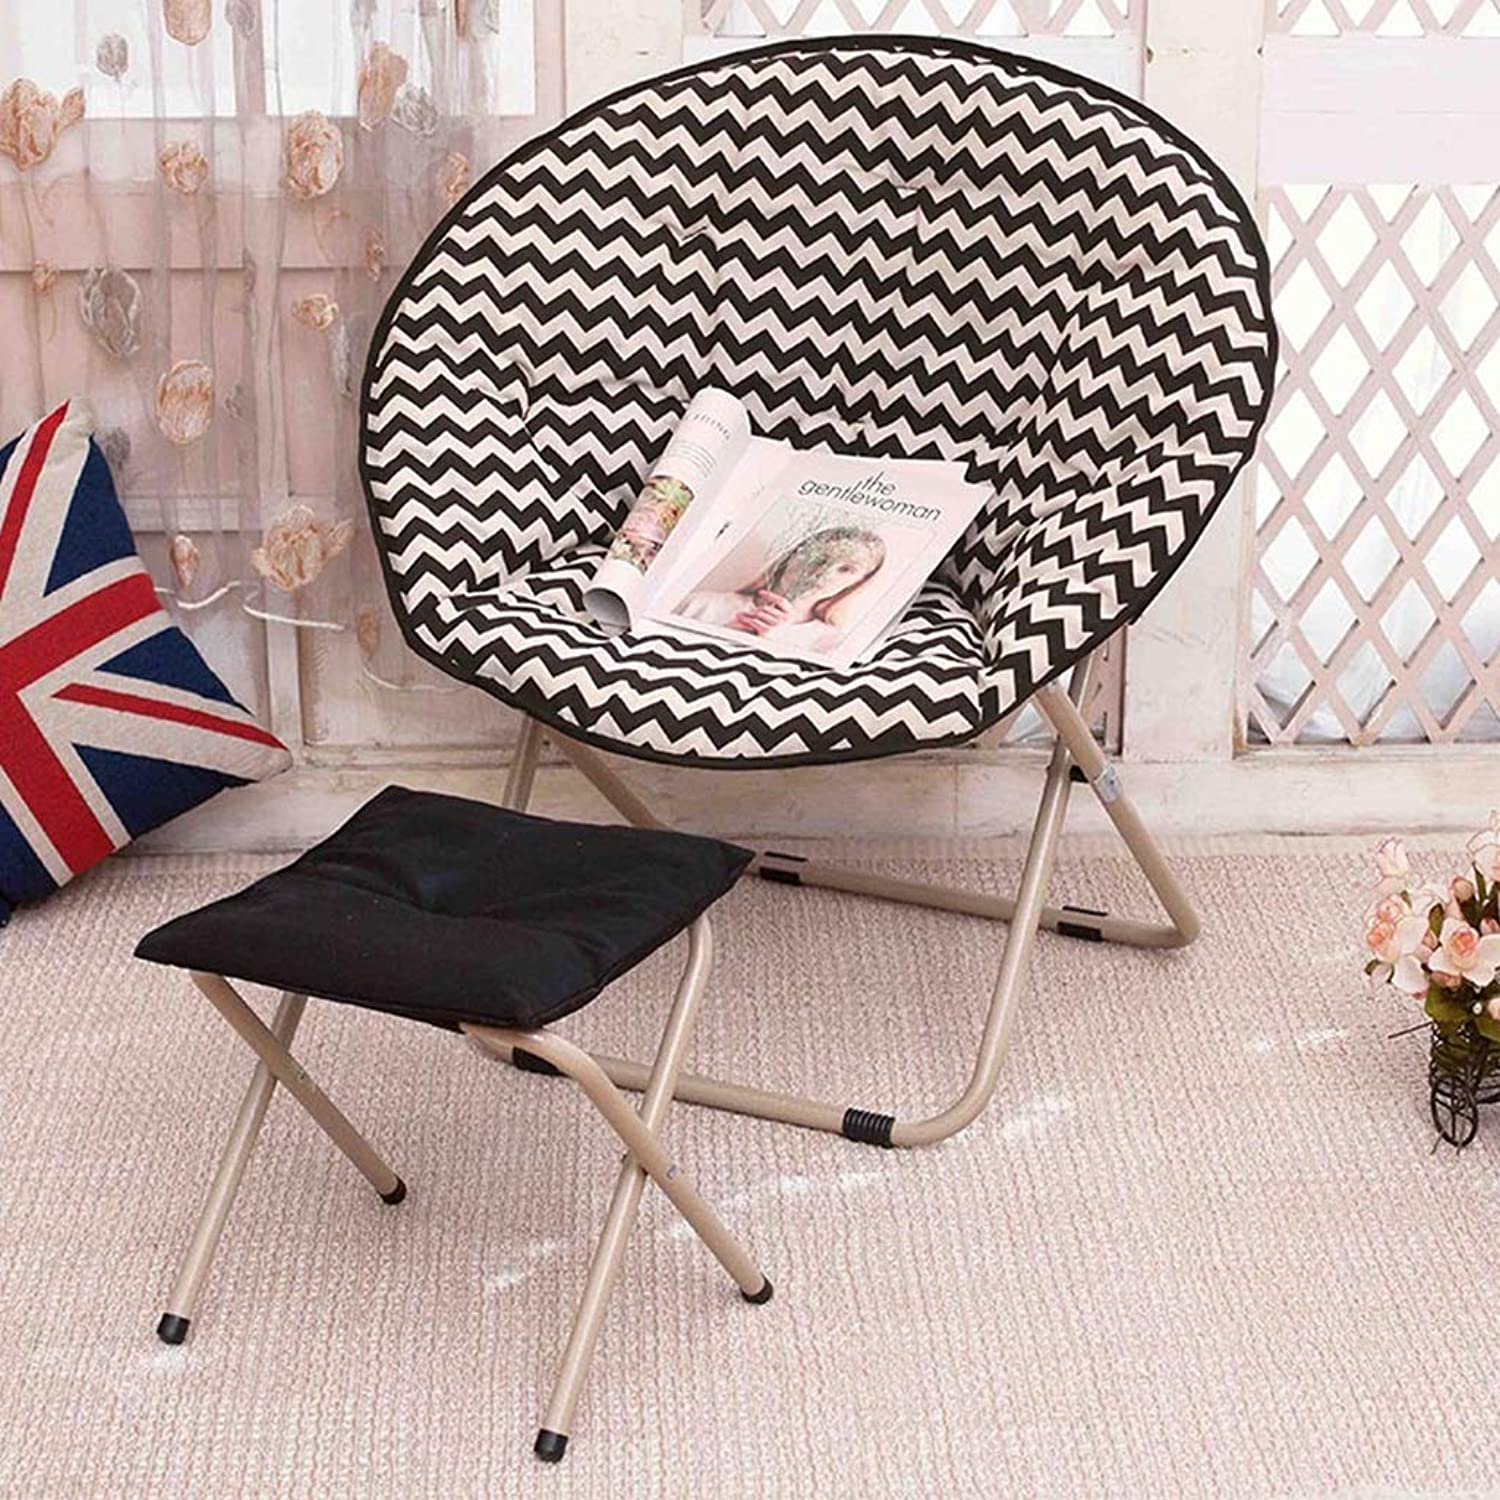 Zcxbhd Large Lounge Chair Adult Moon Chair Sun Loungers Lazy Chair Foldable Seat Round Chair